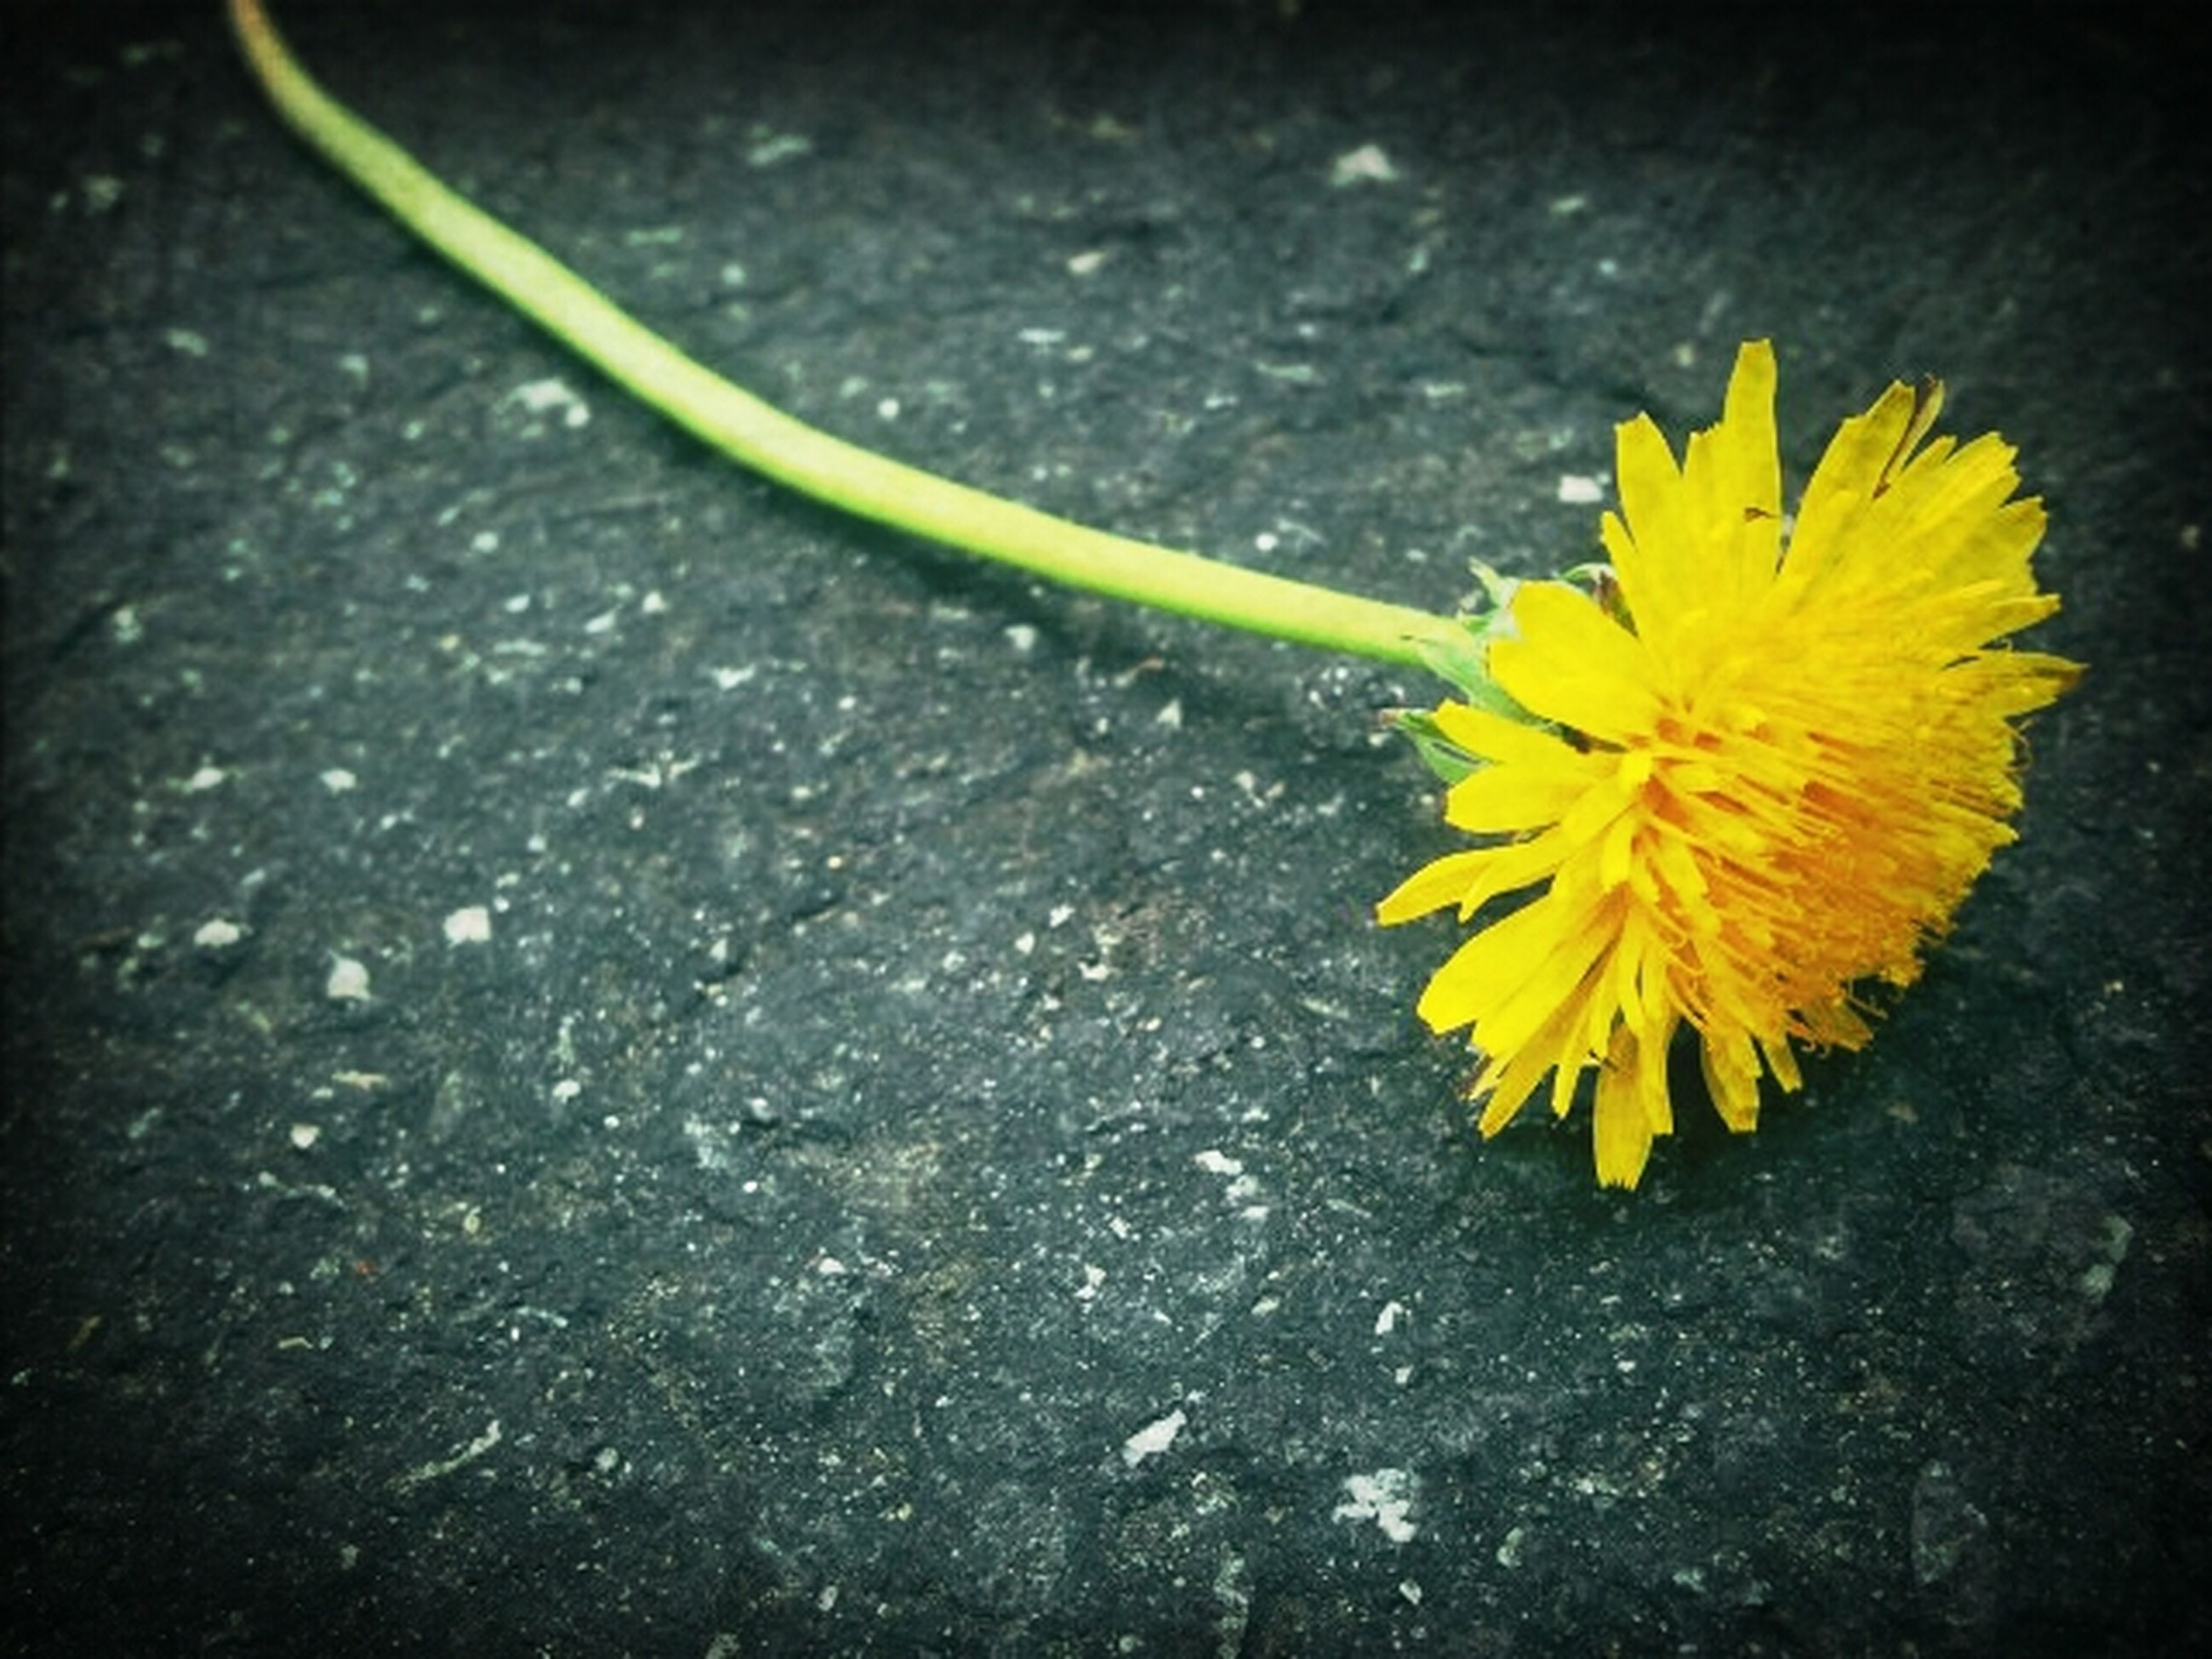 yellow, flower, fragility, petal, flower head, freshness, high angle view, close-up, single flower, nature, beauty in nature, plant, growth, no people, outdoors, day, pollen, leaf, blooming, in bloom